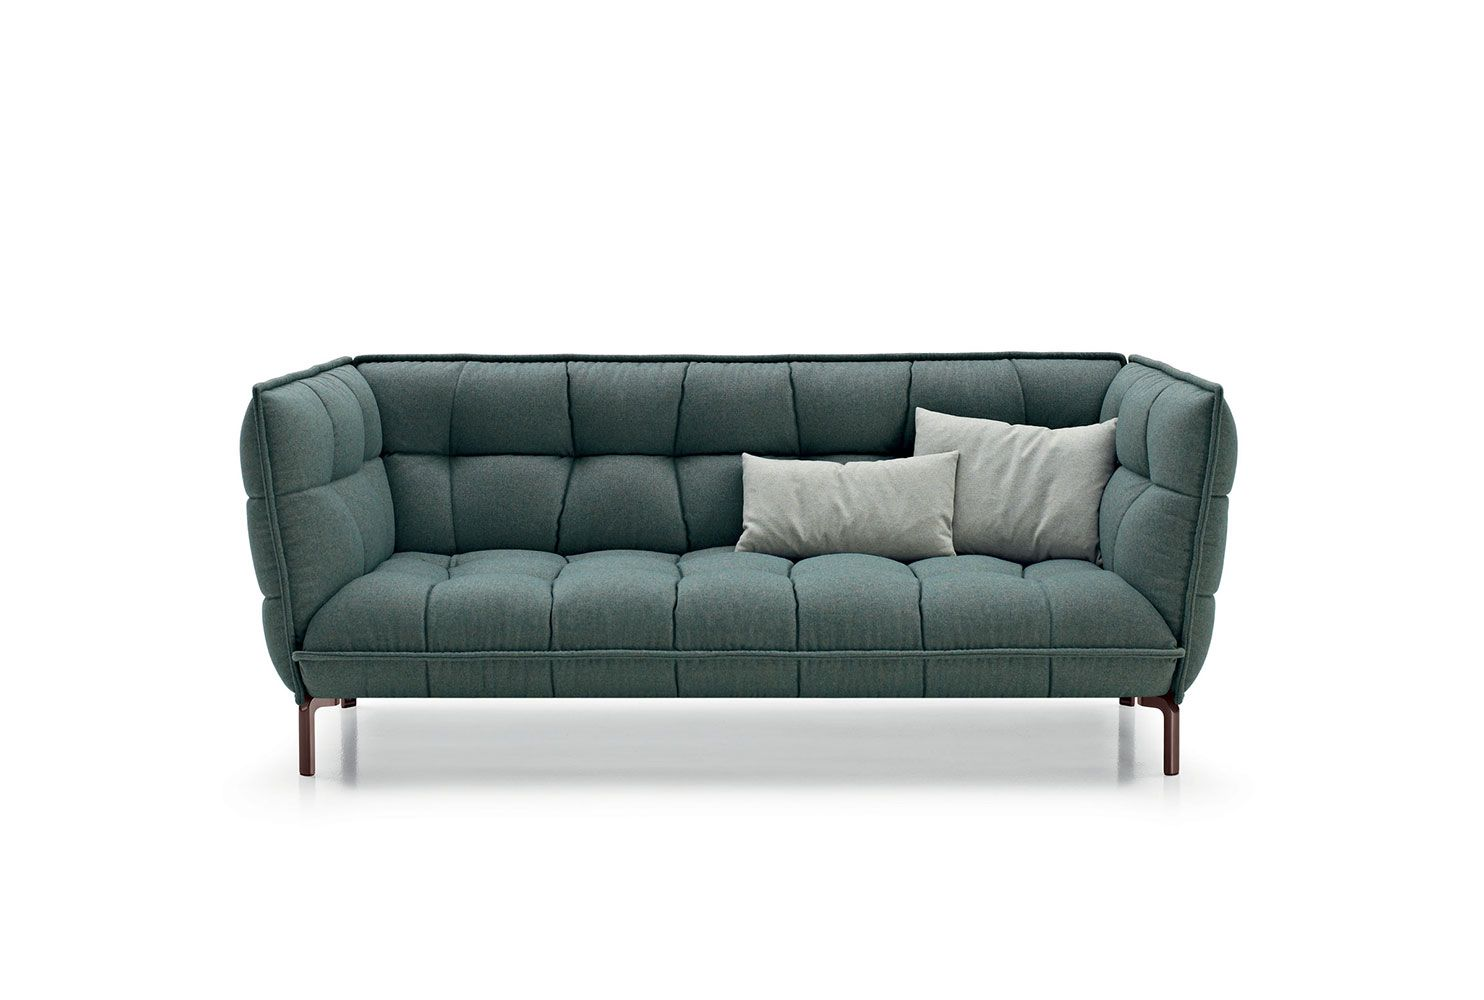 172 best Sofas images on Pinterest | Sofas, B&b italia and Leather ...